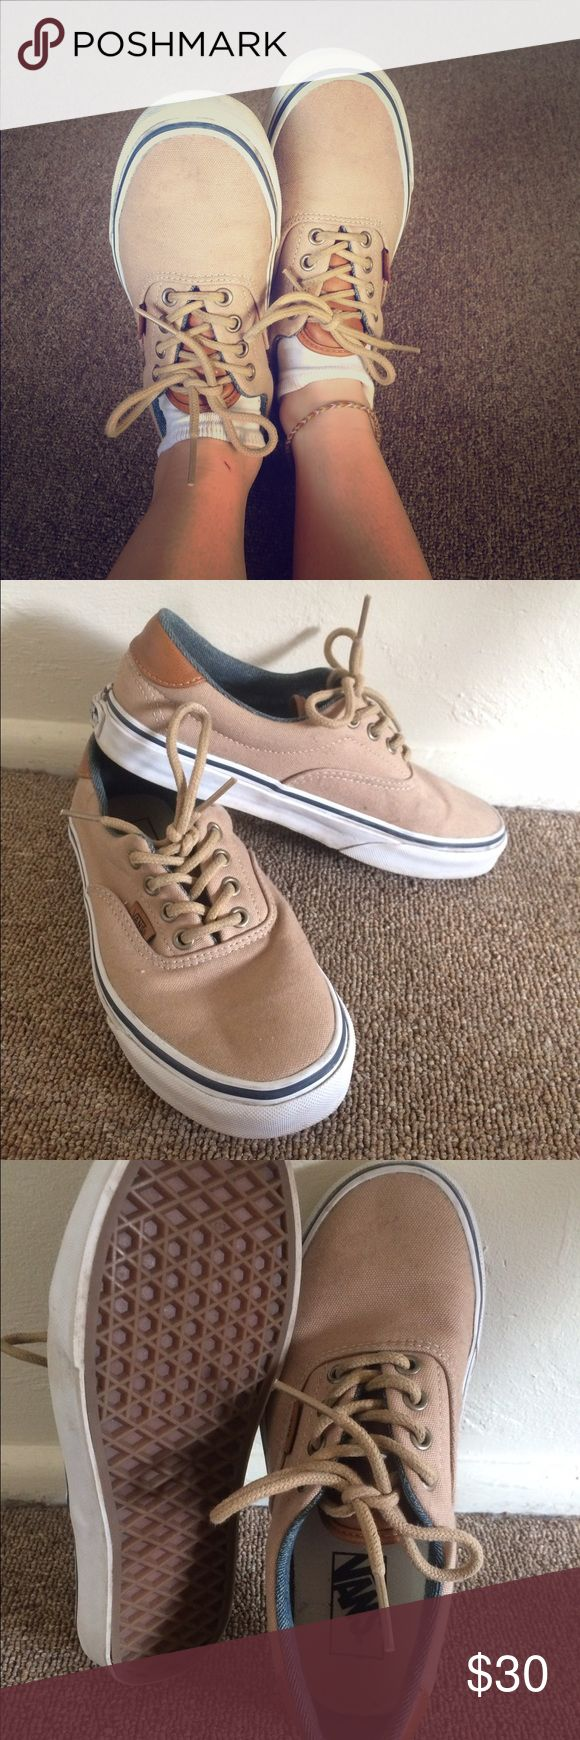 Canvas Vans skate shoes Tan, canvas Vans sneakers. I've worn them a few times but they are it really great condition! Vans Shoes Sneakers